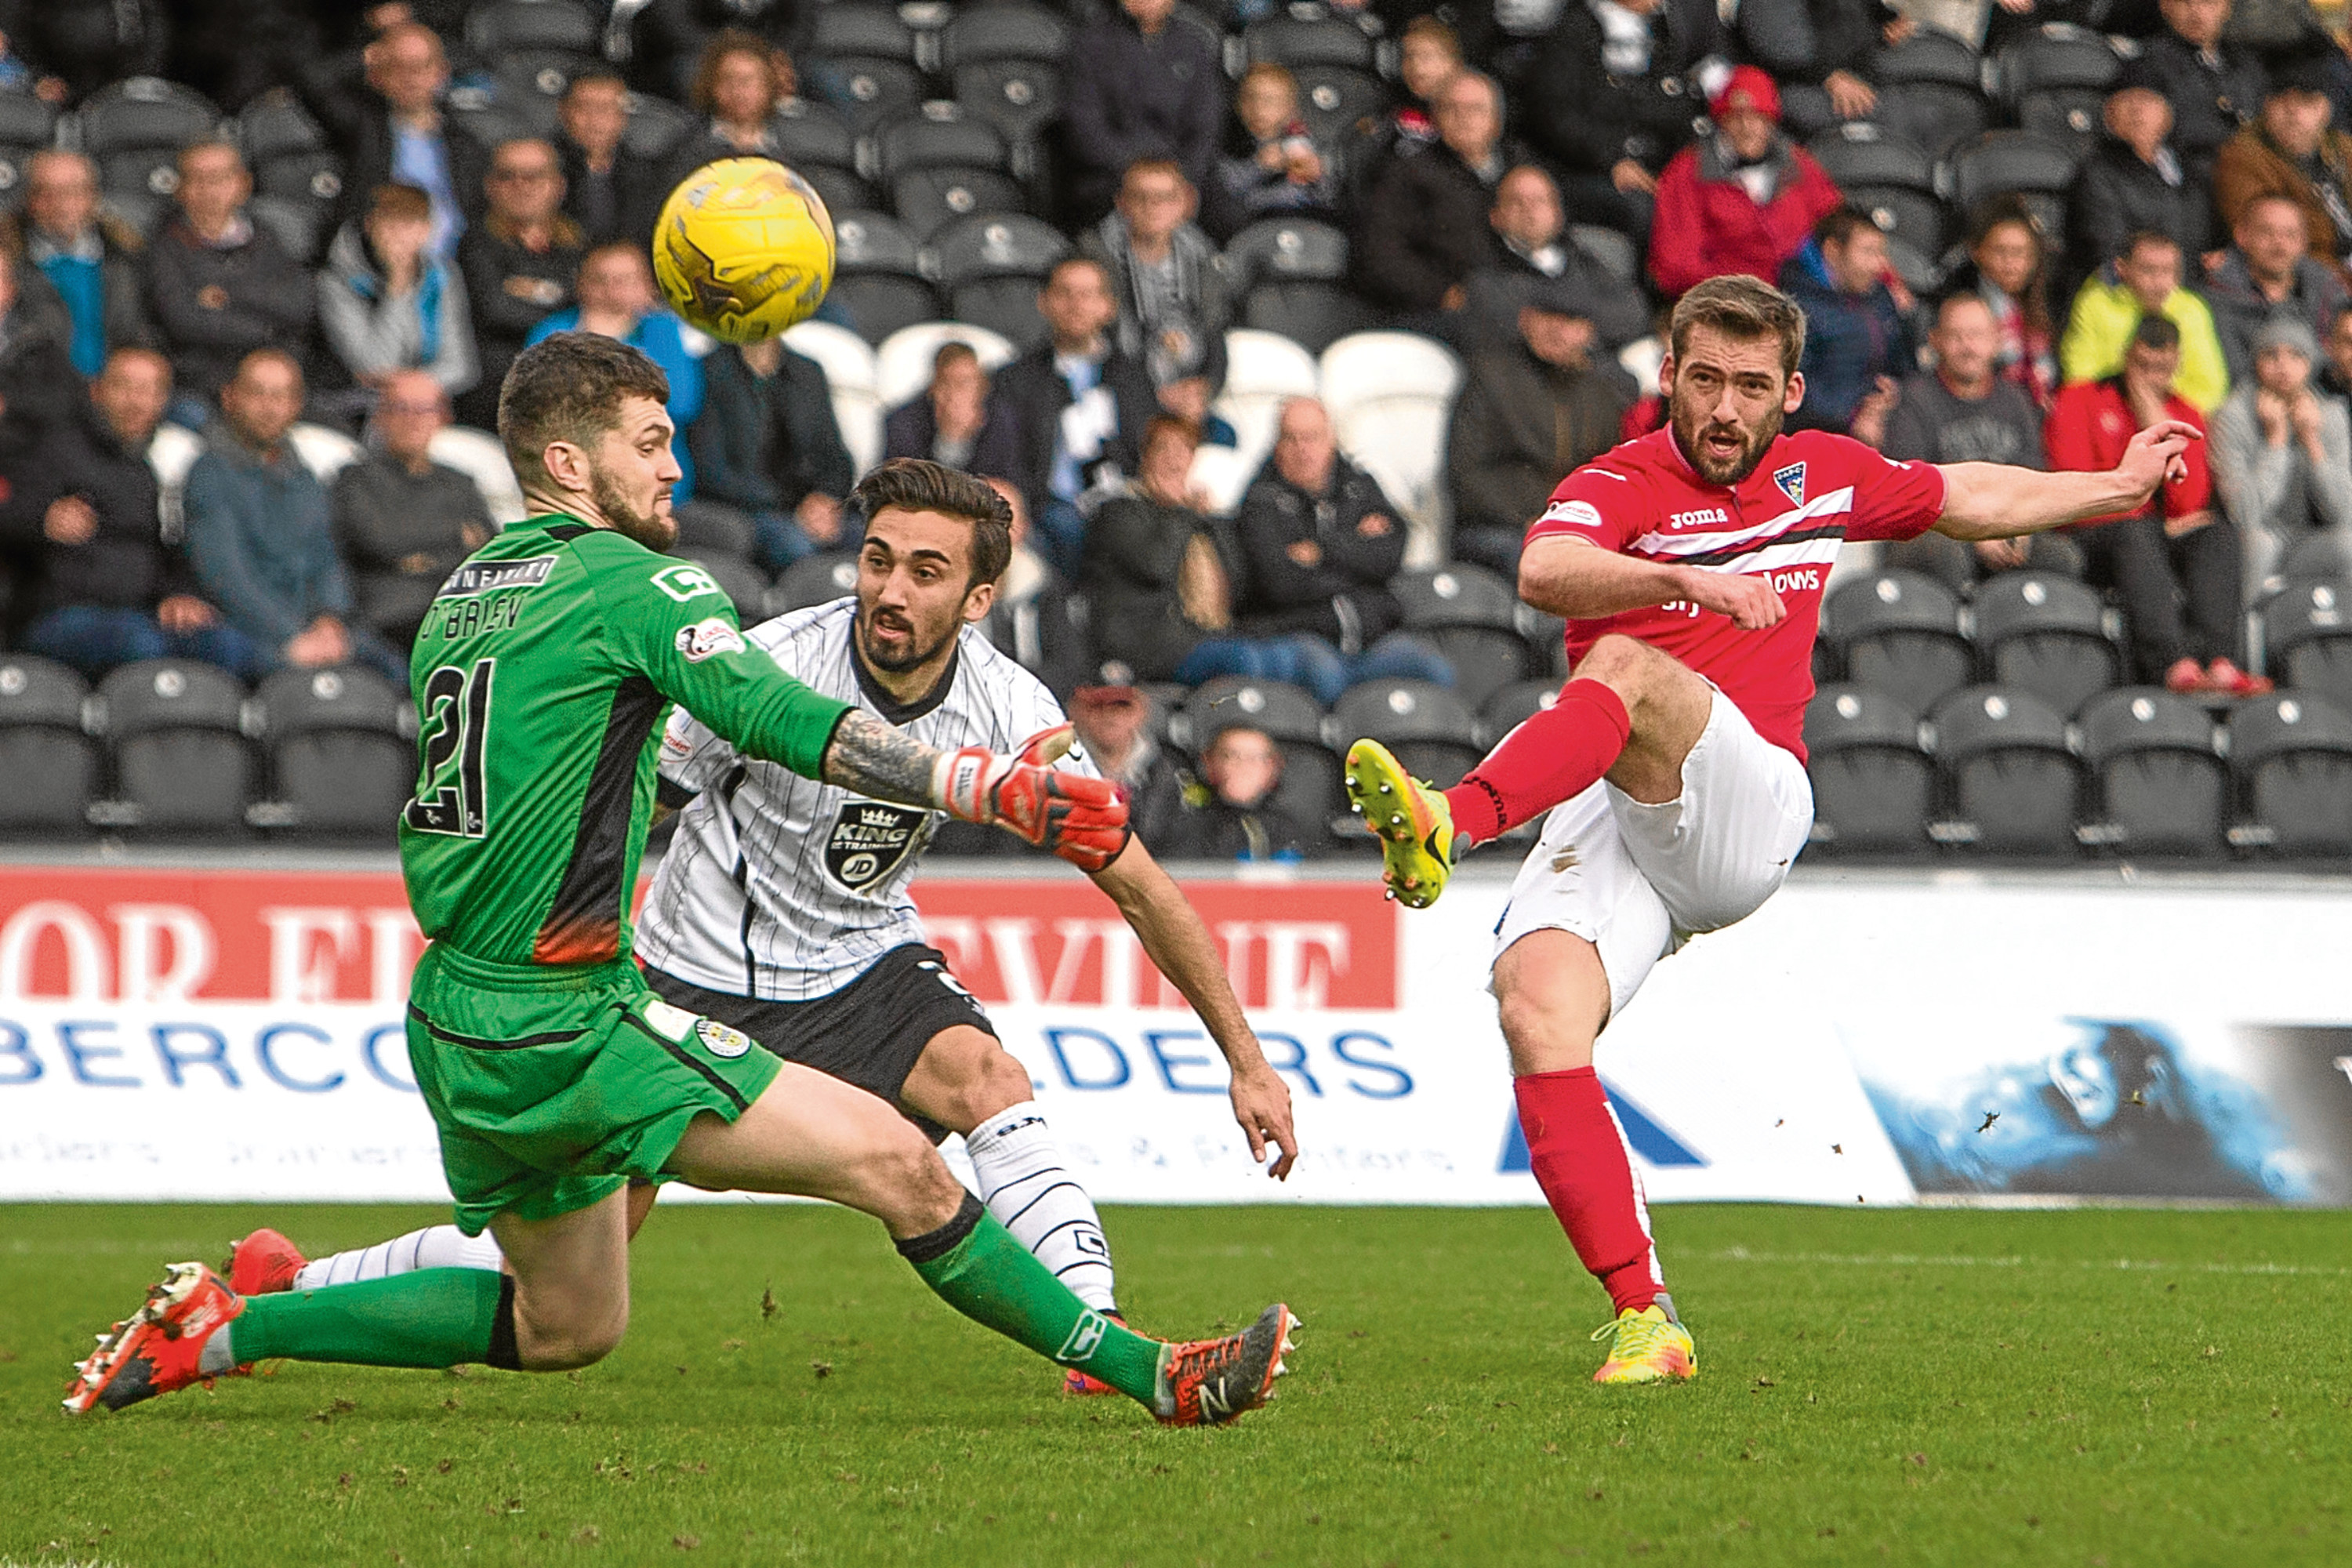 While Dunfermline threatened, St Mirren keeper Billy O'Brien kept a clean sheet.